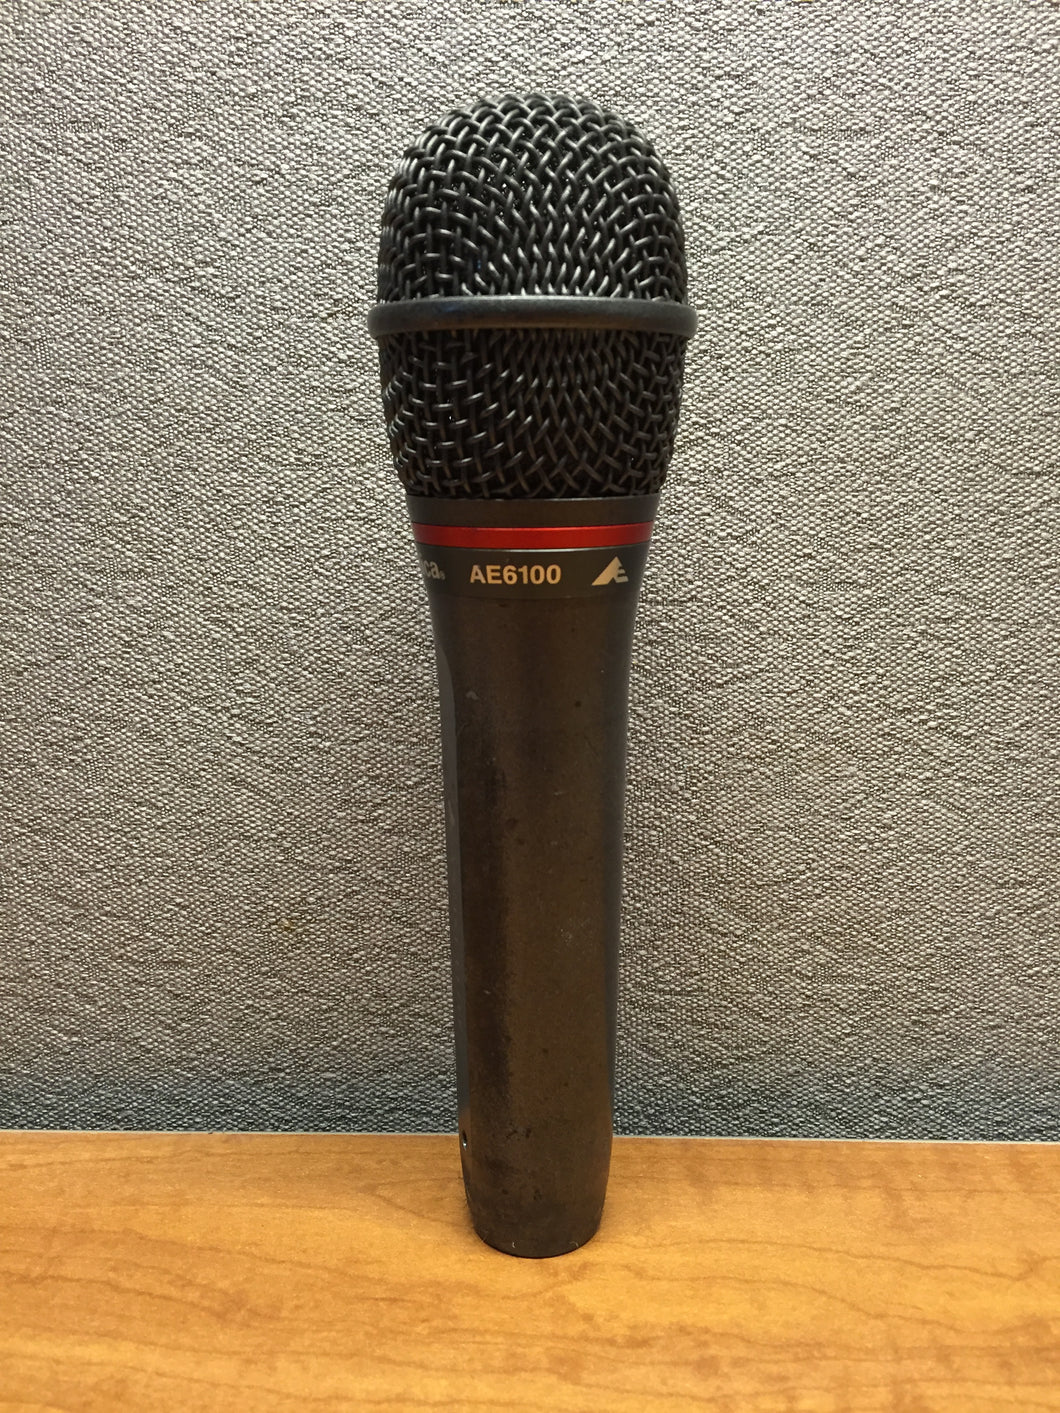 Mic, Audio-Technica, AE6100, Hyper-Cardioid, Dynamic